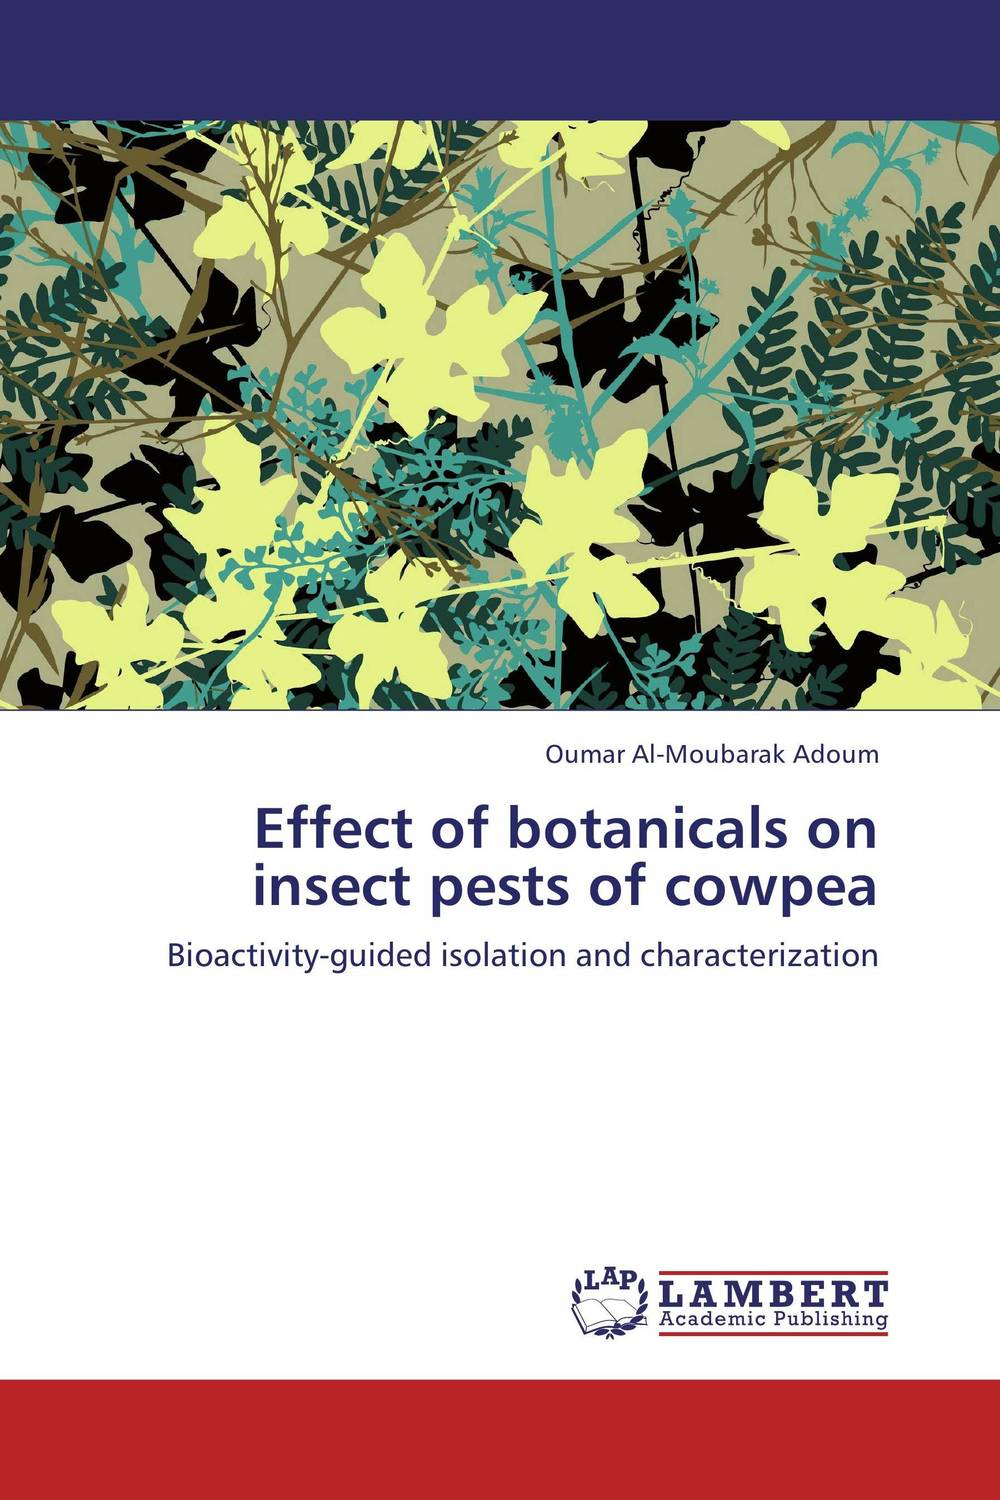 Effect of botanicals on insect pests of cowpea